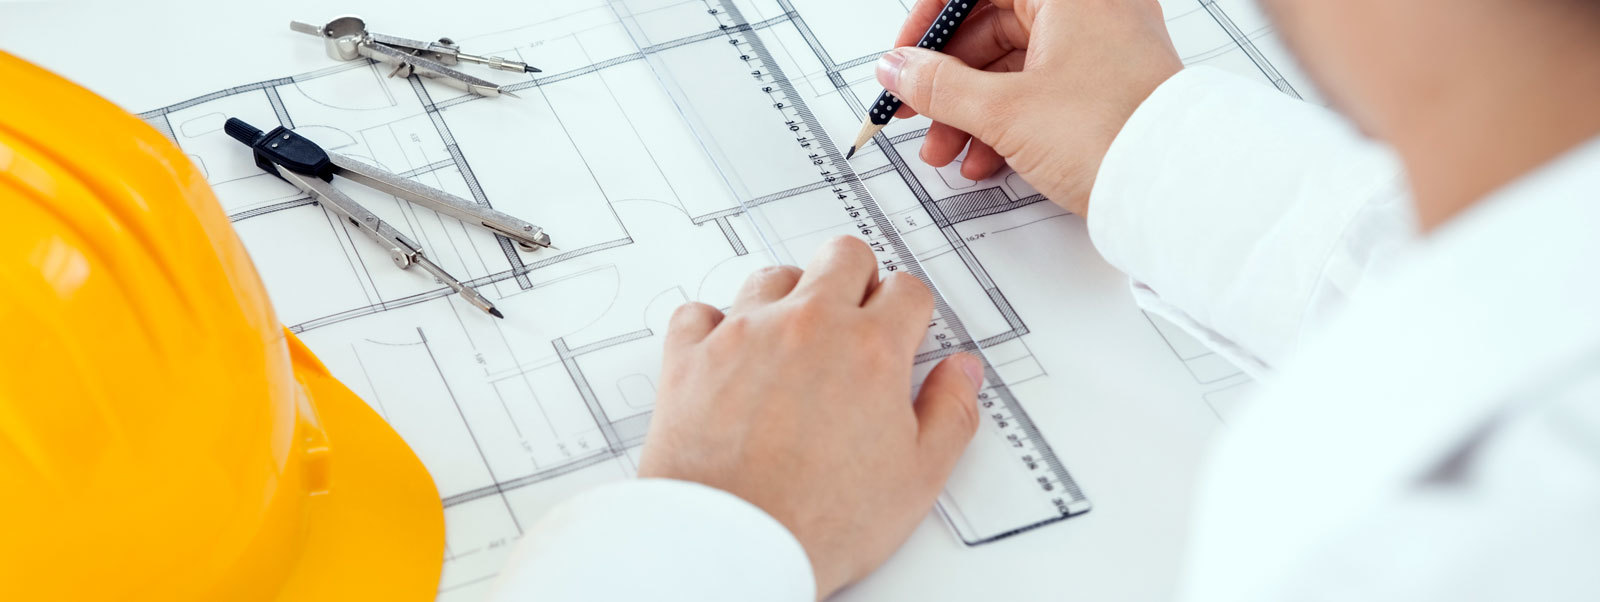 Architecture Engineering Training In Egypt